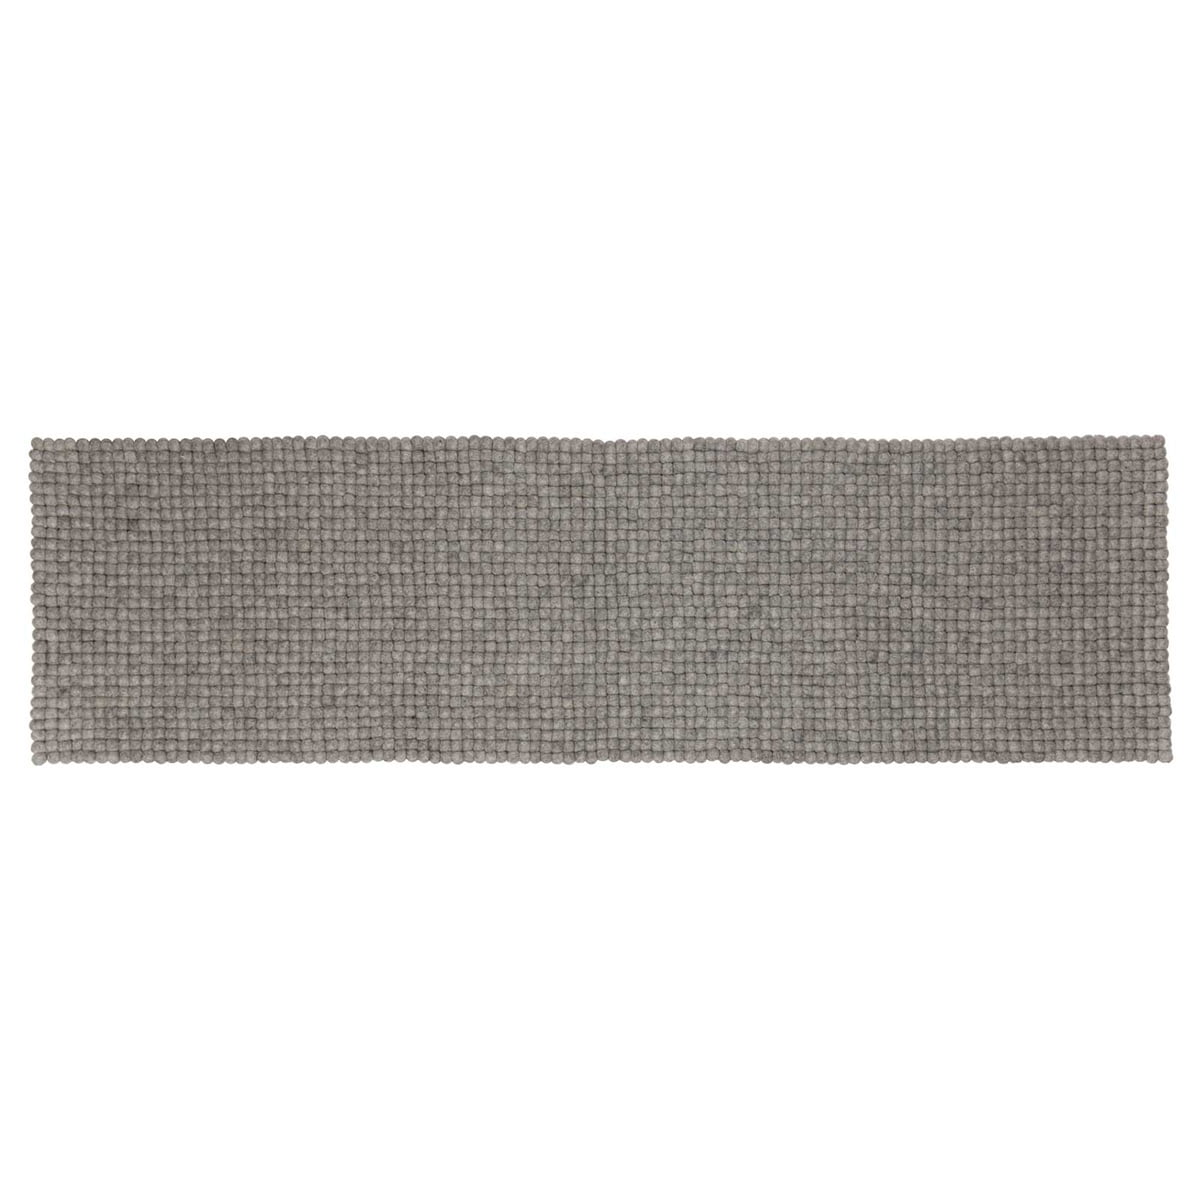 myfelt - chemin de table 40 x 140 cm, Carl